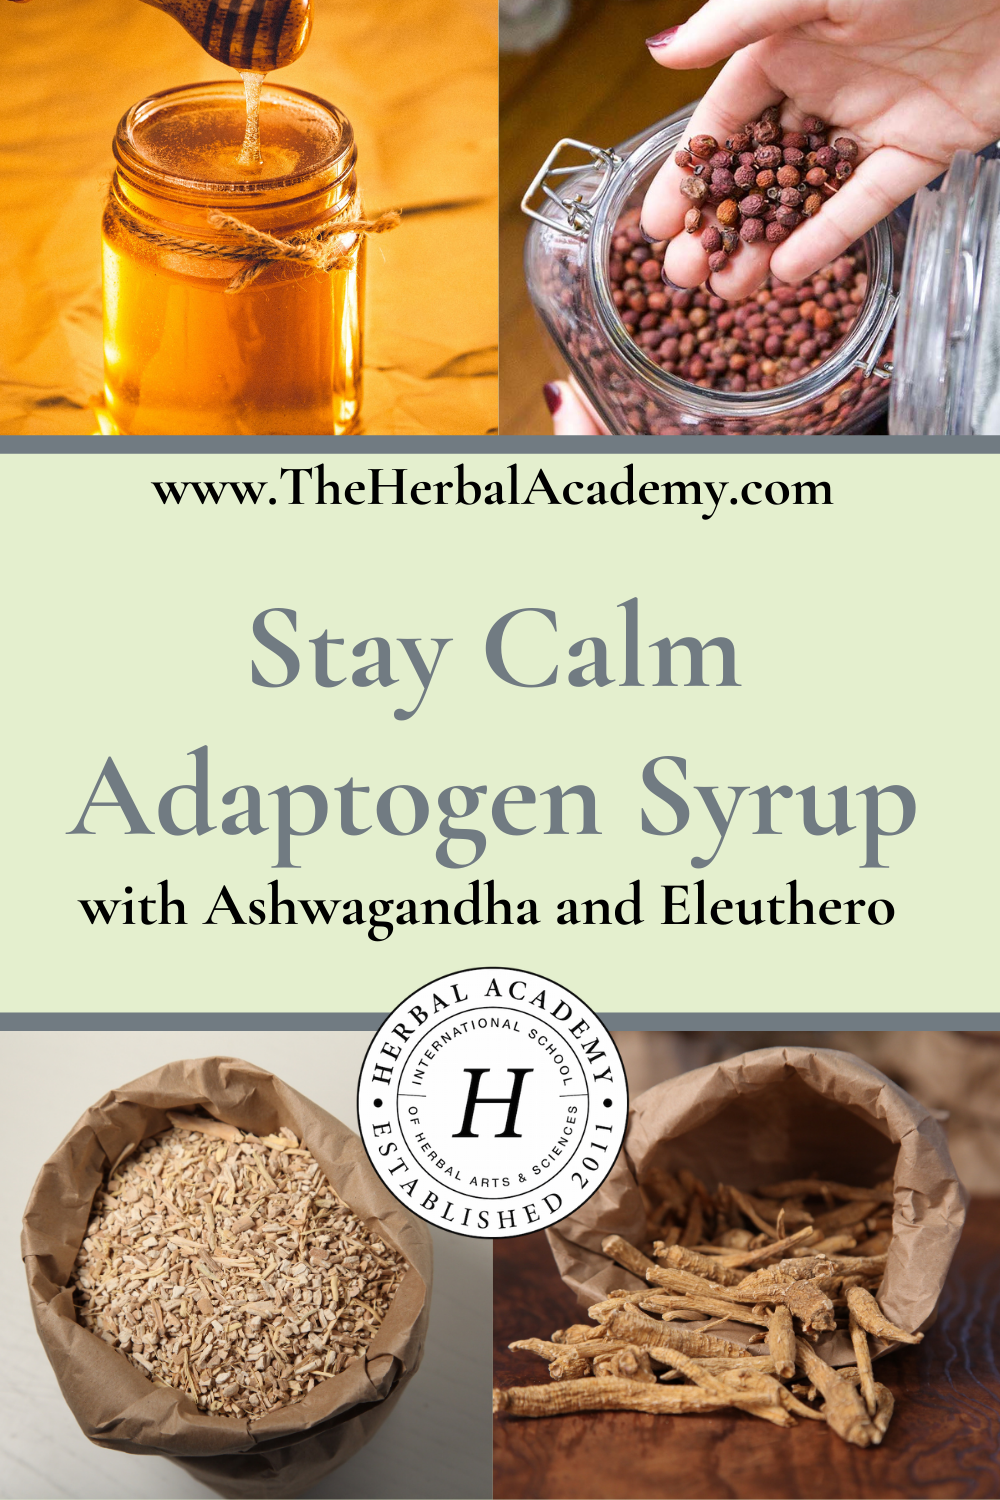 Stay Calm Adaptogen Syrup with Ashwagandha and Eleuthero   Herbal Academy   Pintrest graphic